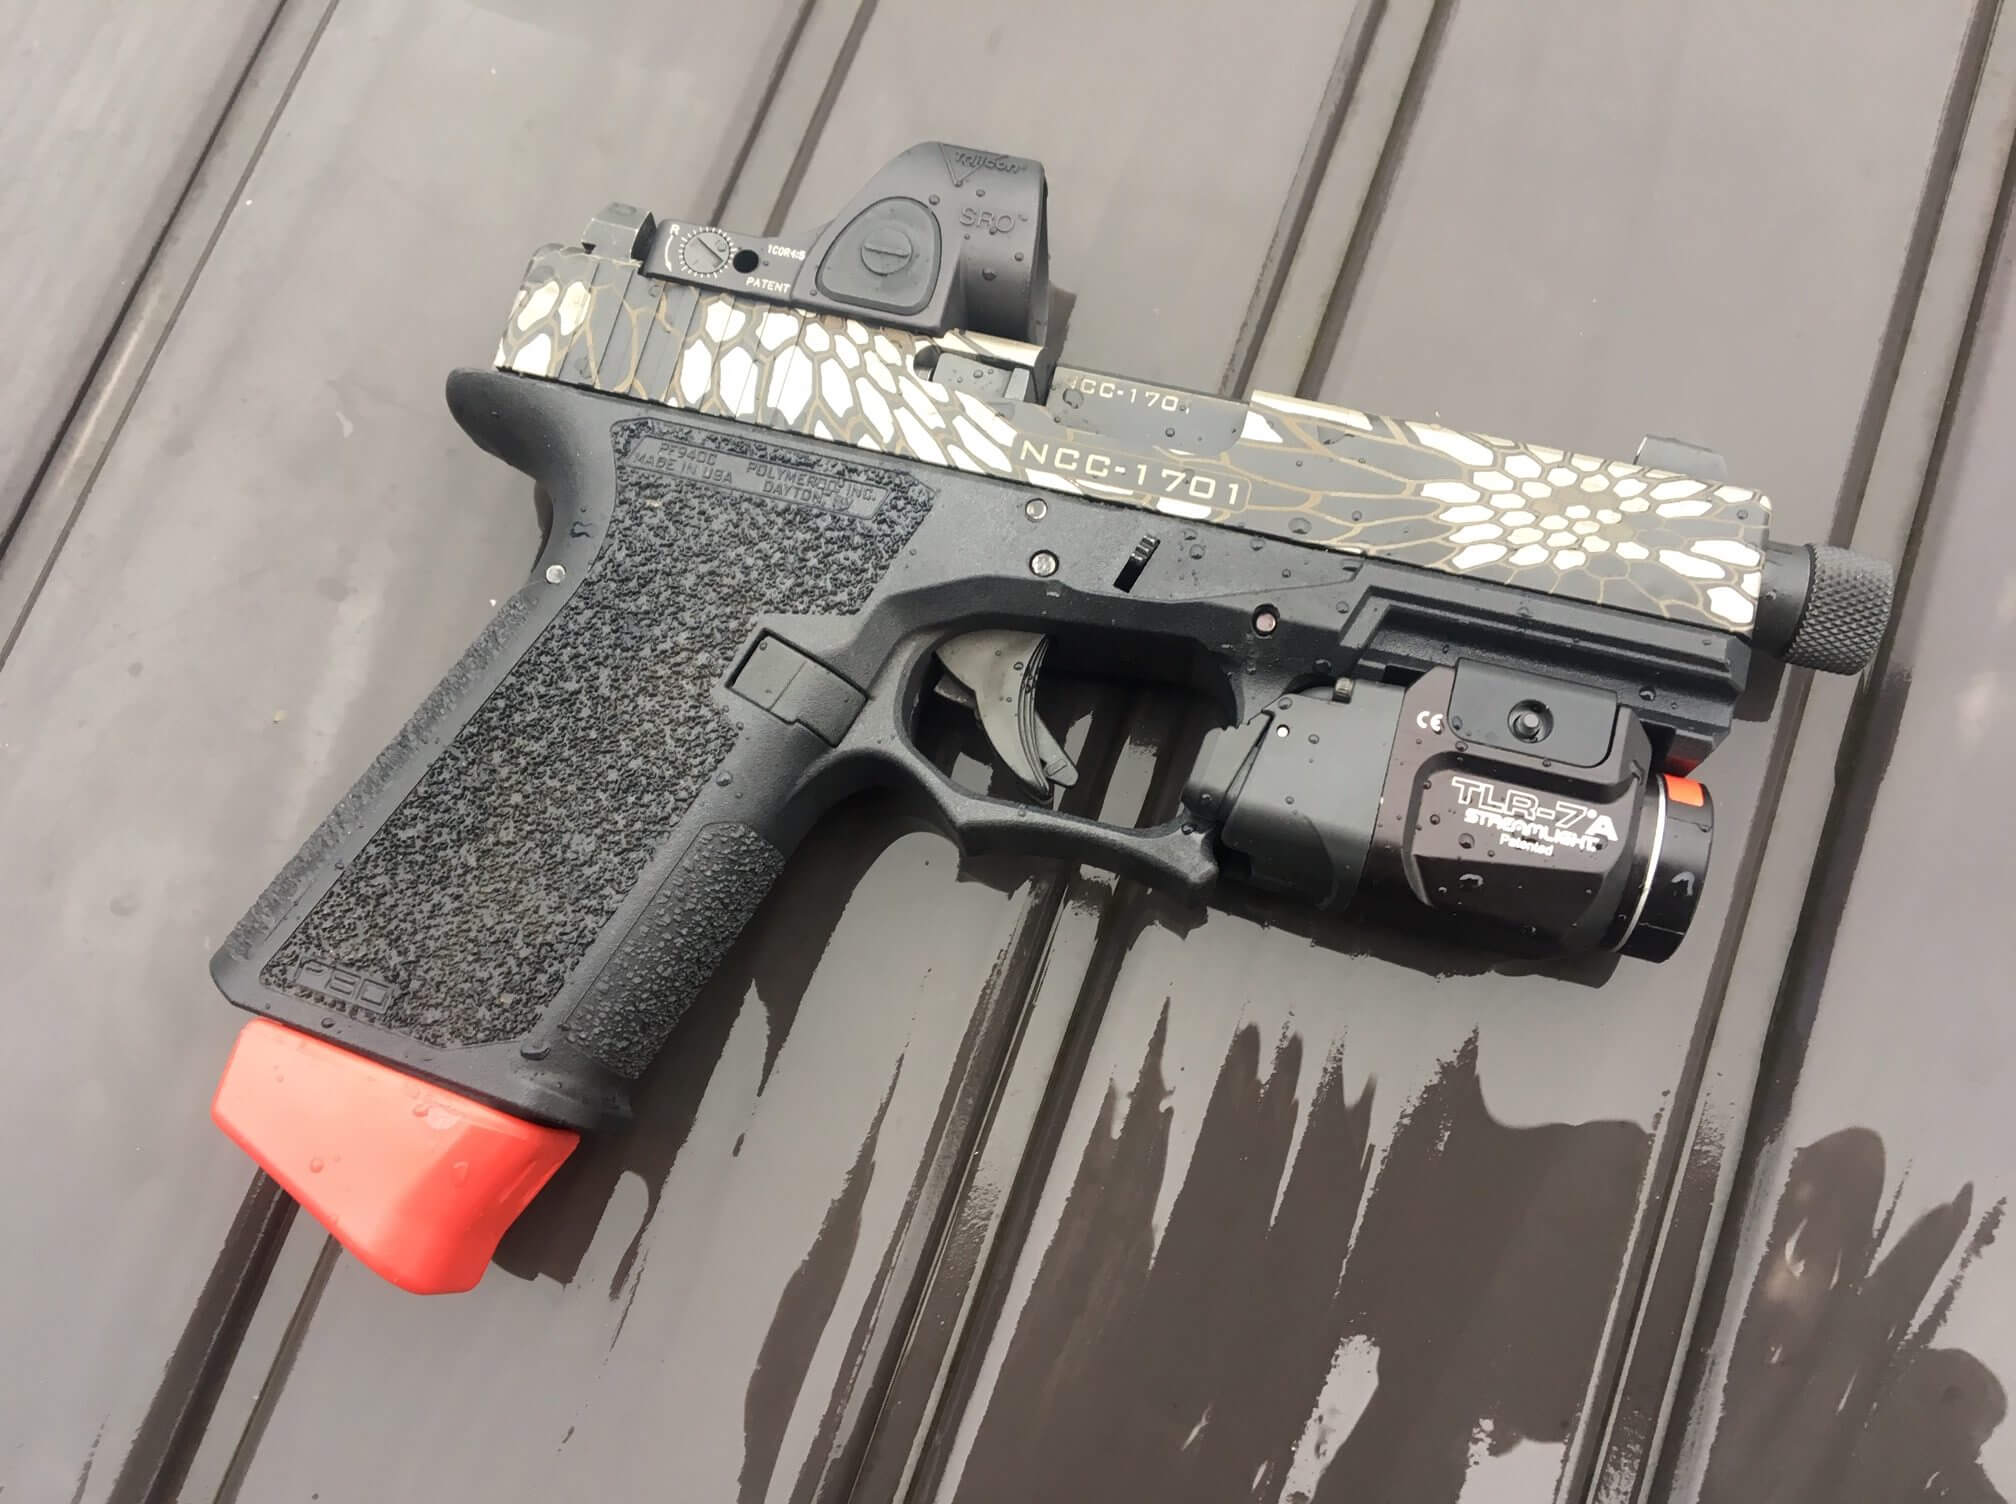 The Future is Red: Mini Red Dot Sights Will Change Your Handgun Shooting